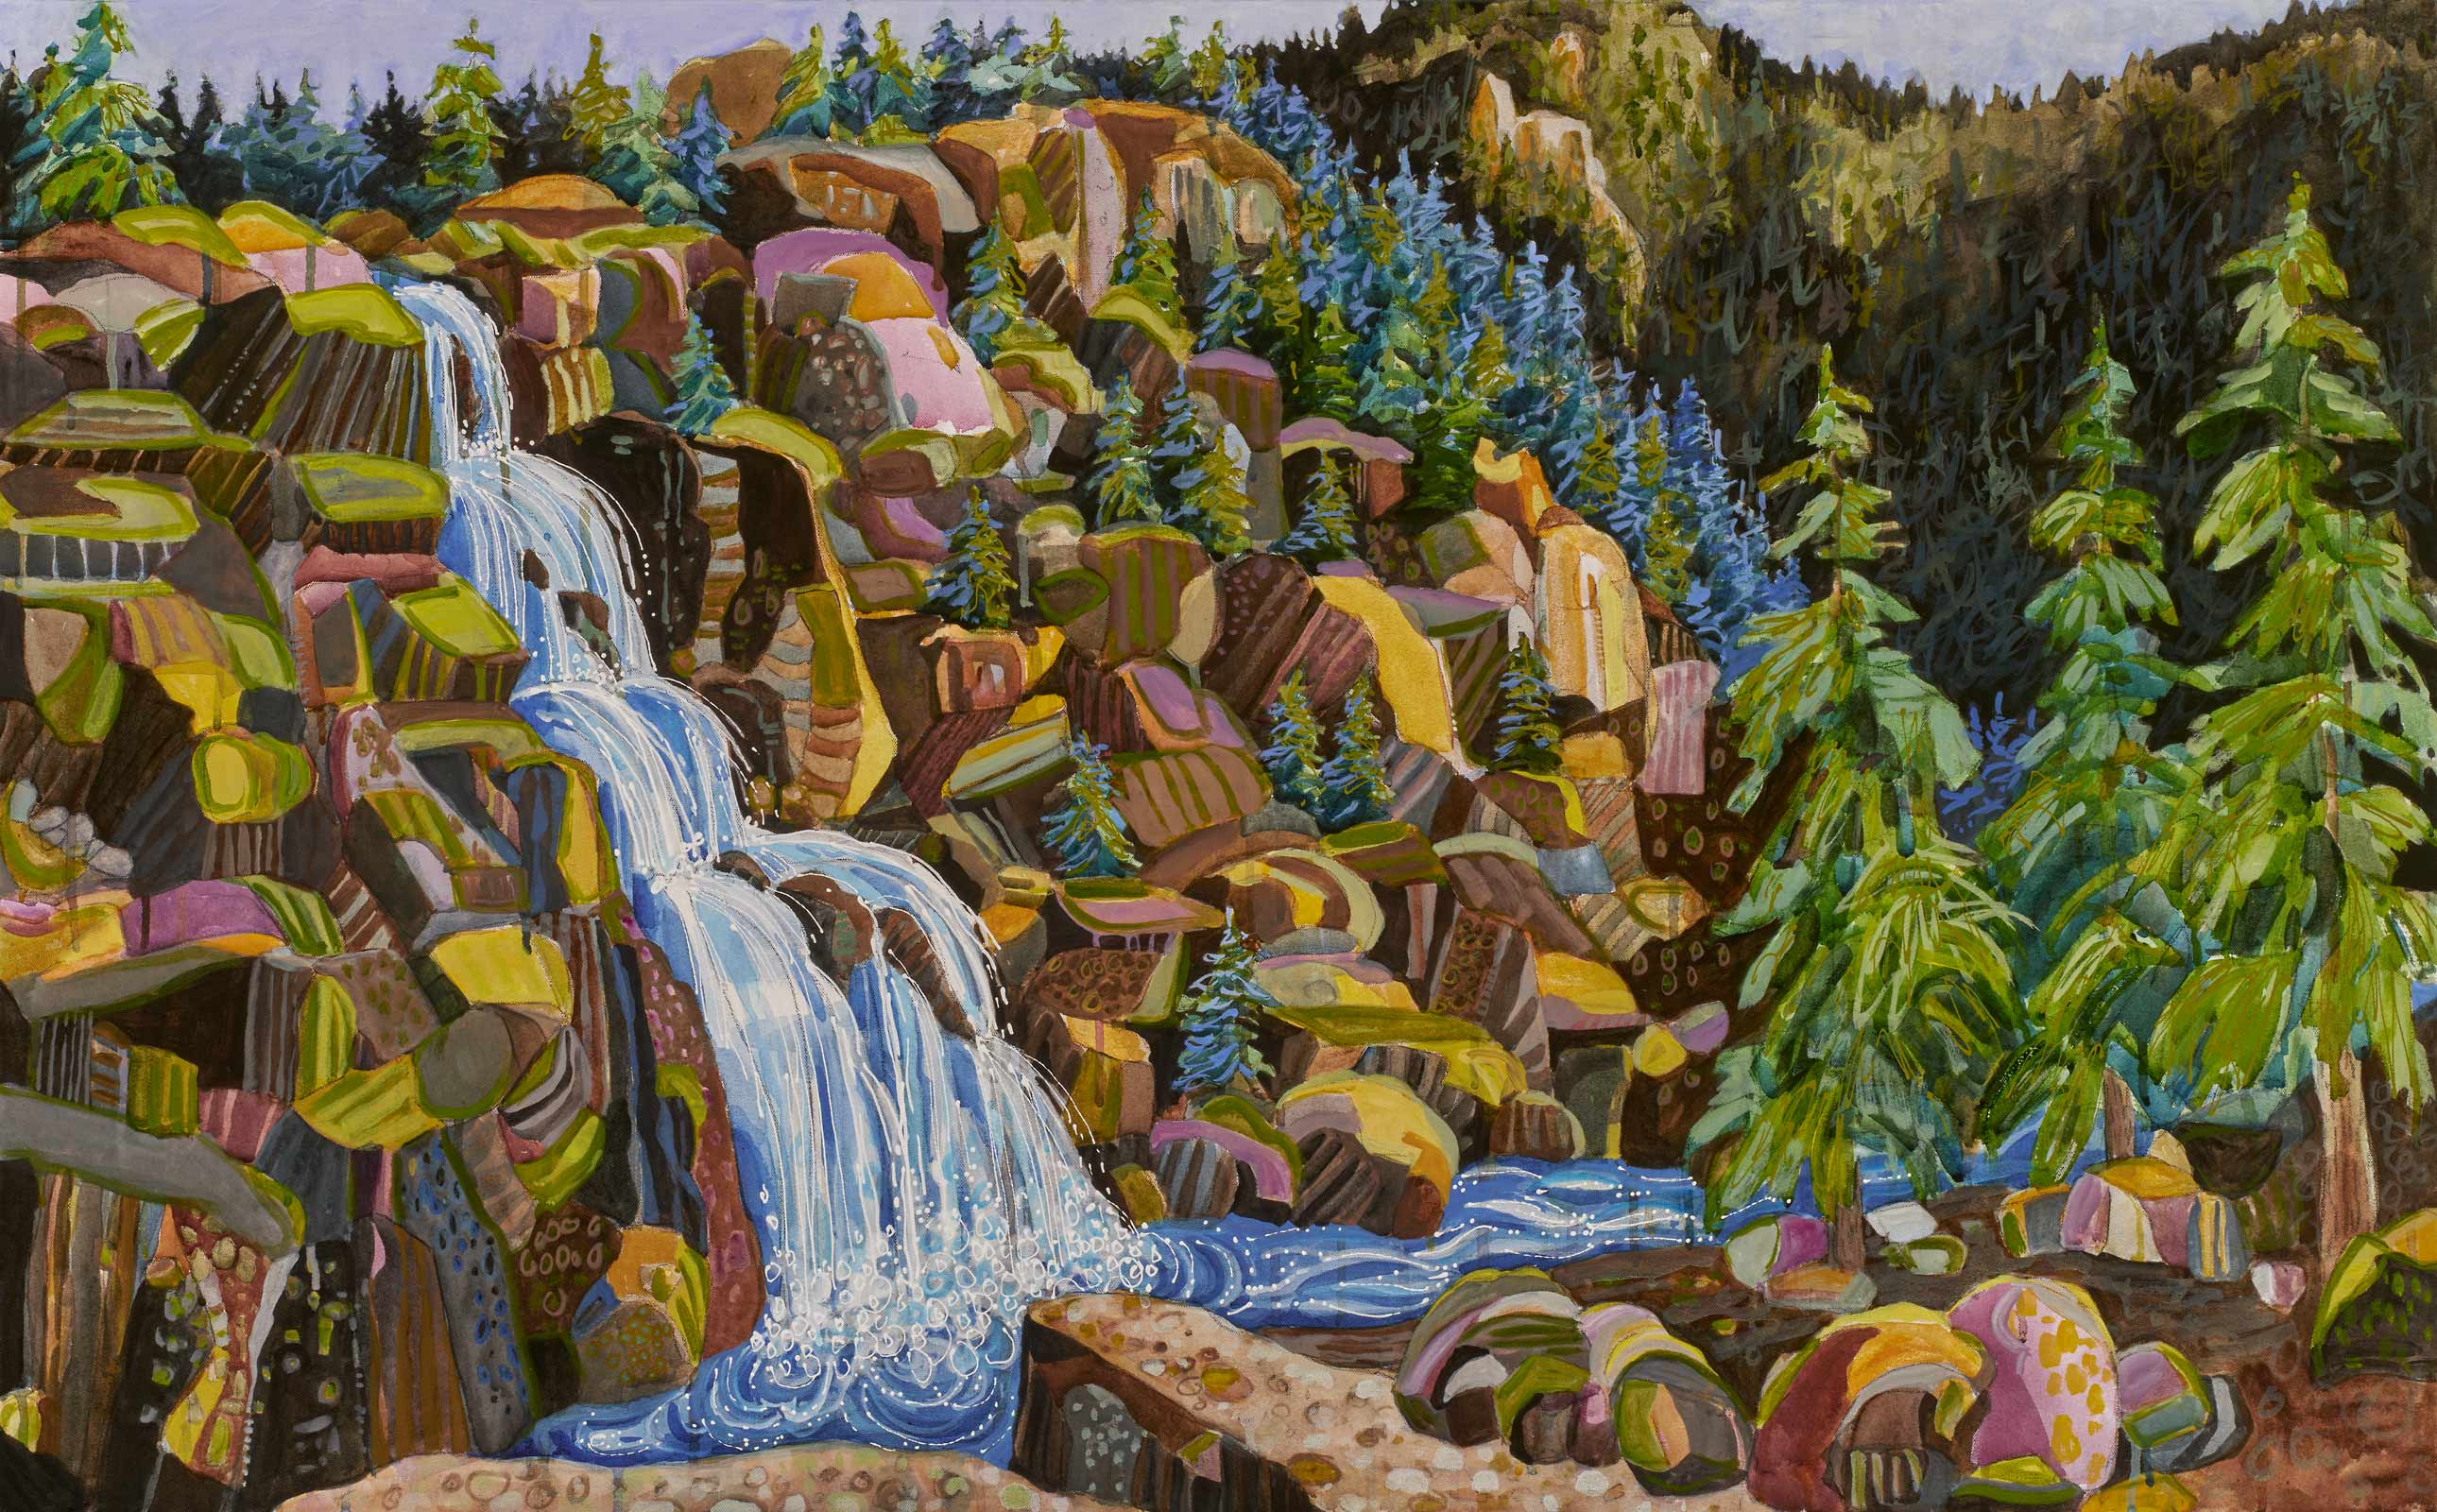 contemporary landscape painting by Lance Whitner hanging in Pine Moon Fine Art. Upper Fish Creek Falls, 28x45